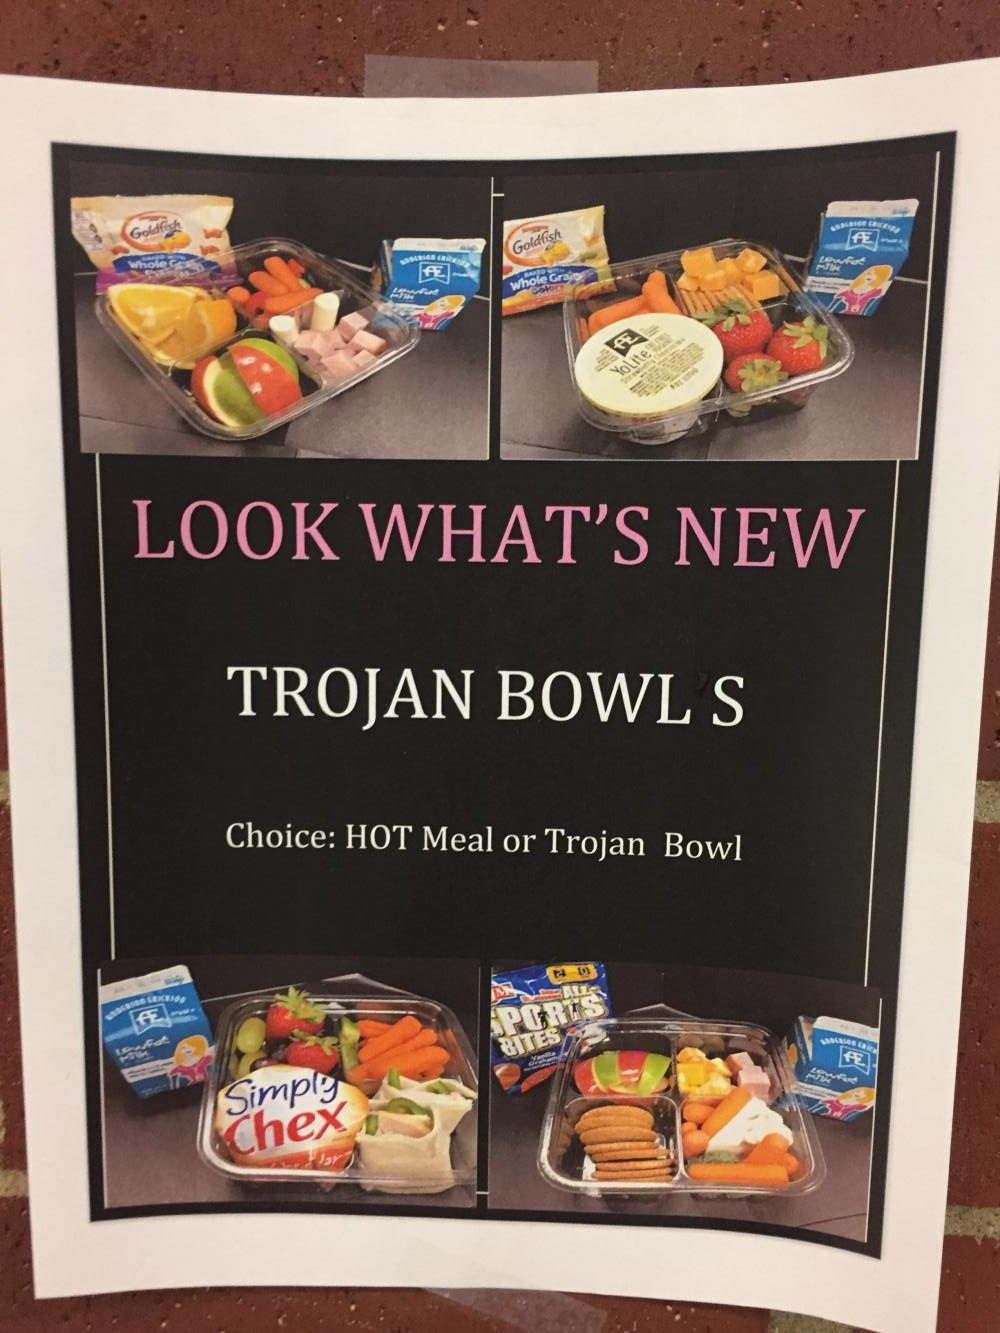 Trojan Bowls are made with different ingredients every day.